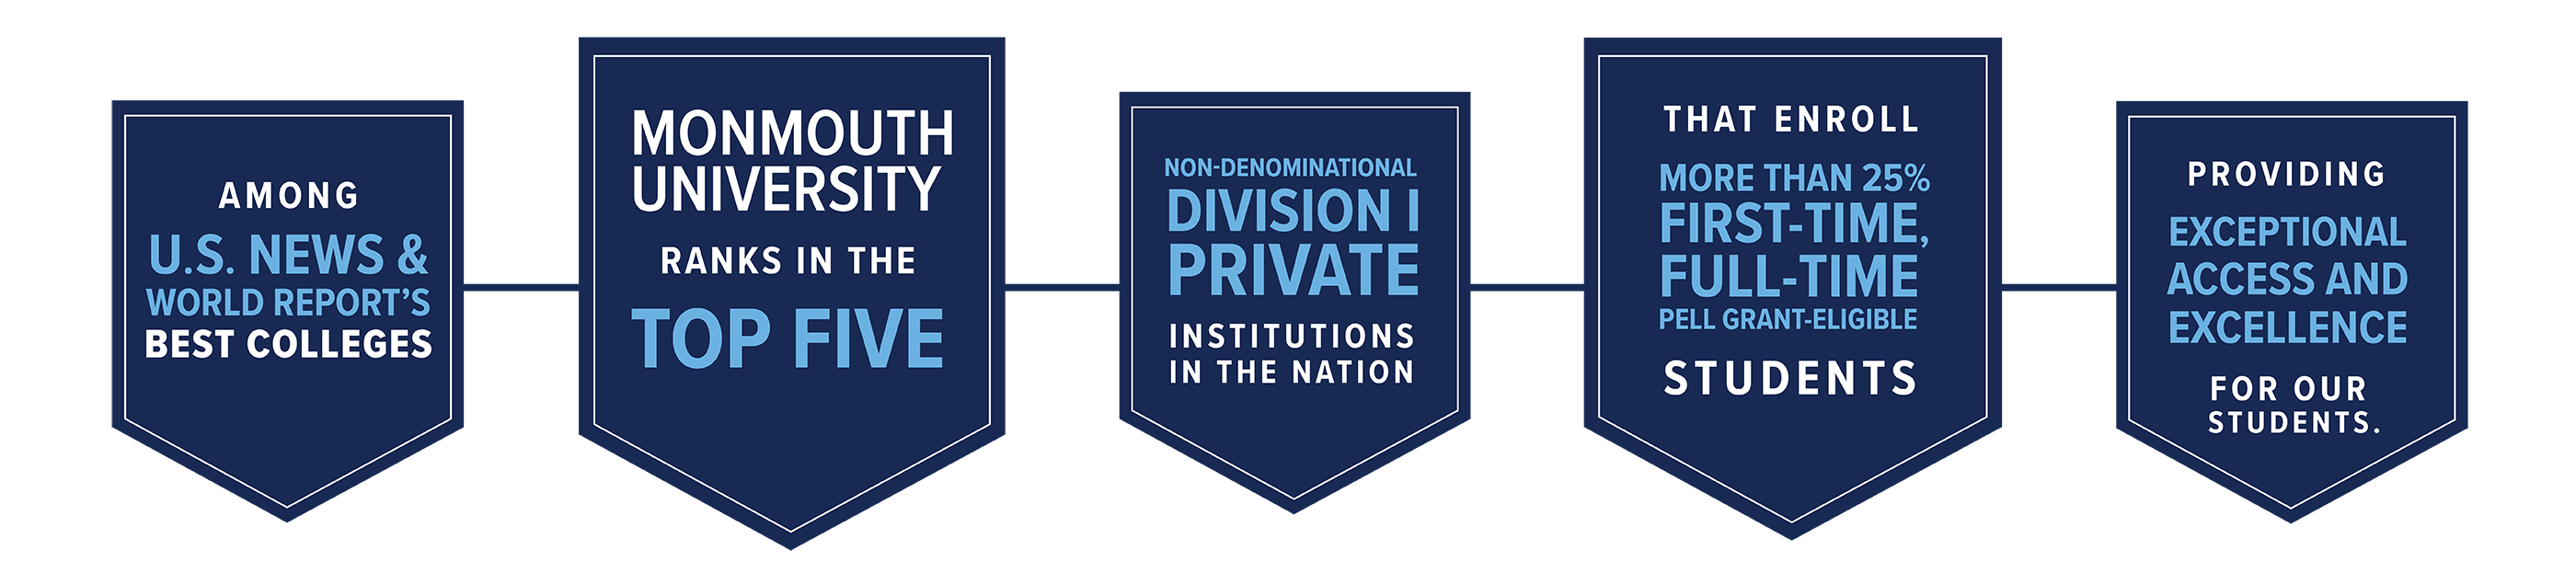 Among U.S. News & World Report's Best Colleges, Monmouth University ranks in the top five non-denominational division I private institutions in the nation that enroll more than 25% first-time, full-time Pell Grant-Eligible students, providing exceptional access and excellence for our students.